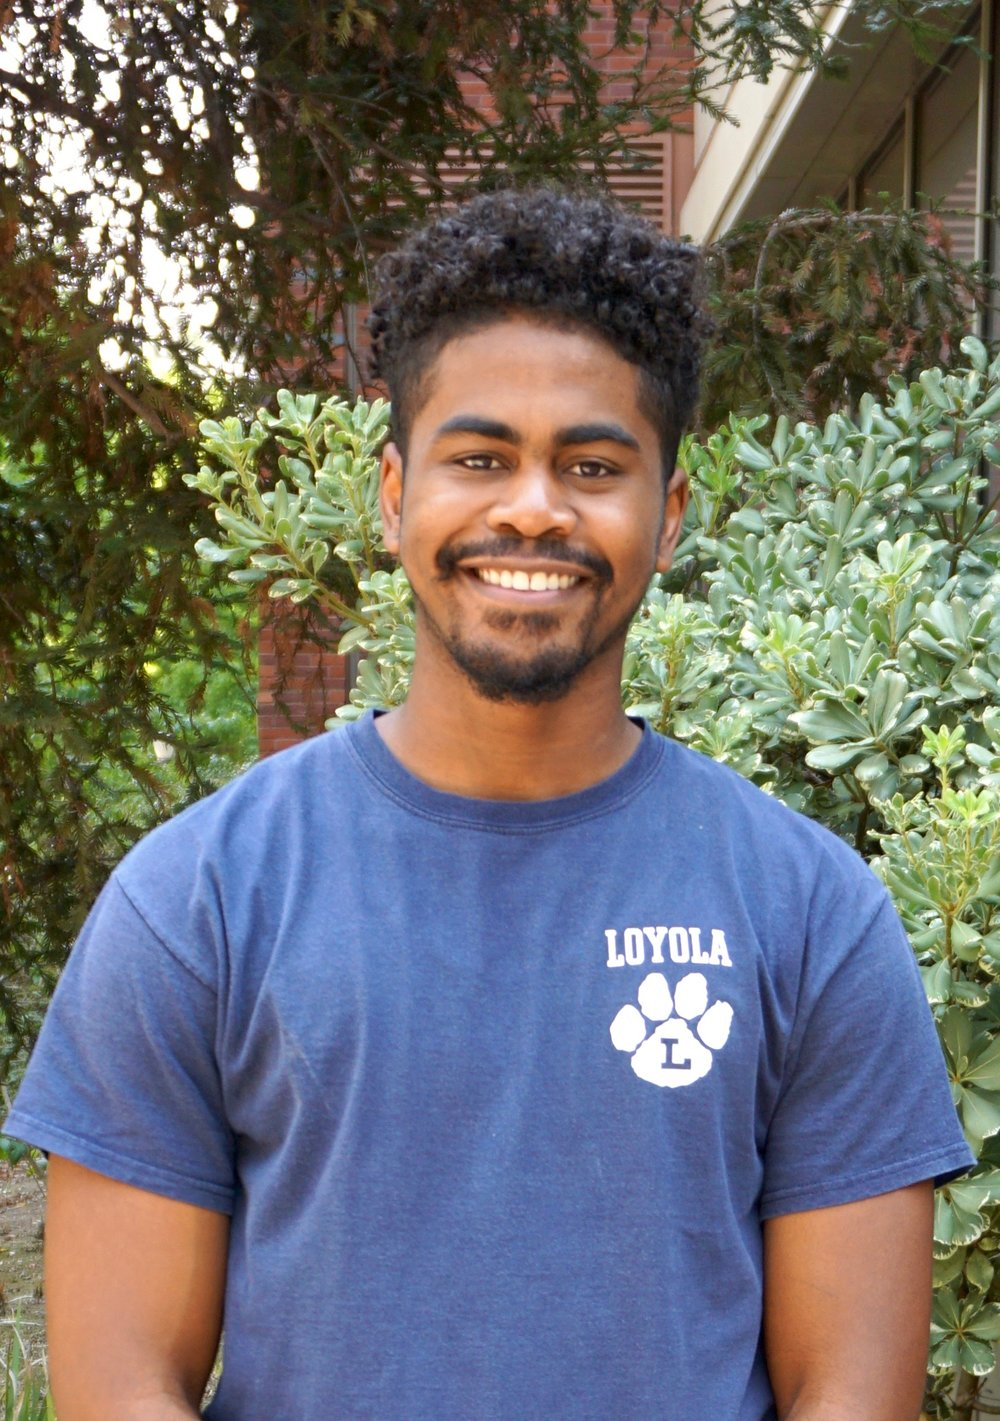 Lenny Washington is studying Environmental Science at UCLA. He hopes to purse a career in sustainable business.  Fun fact: He is the third Lenny Washington in his family.